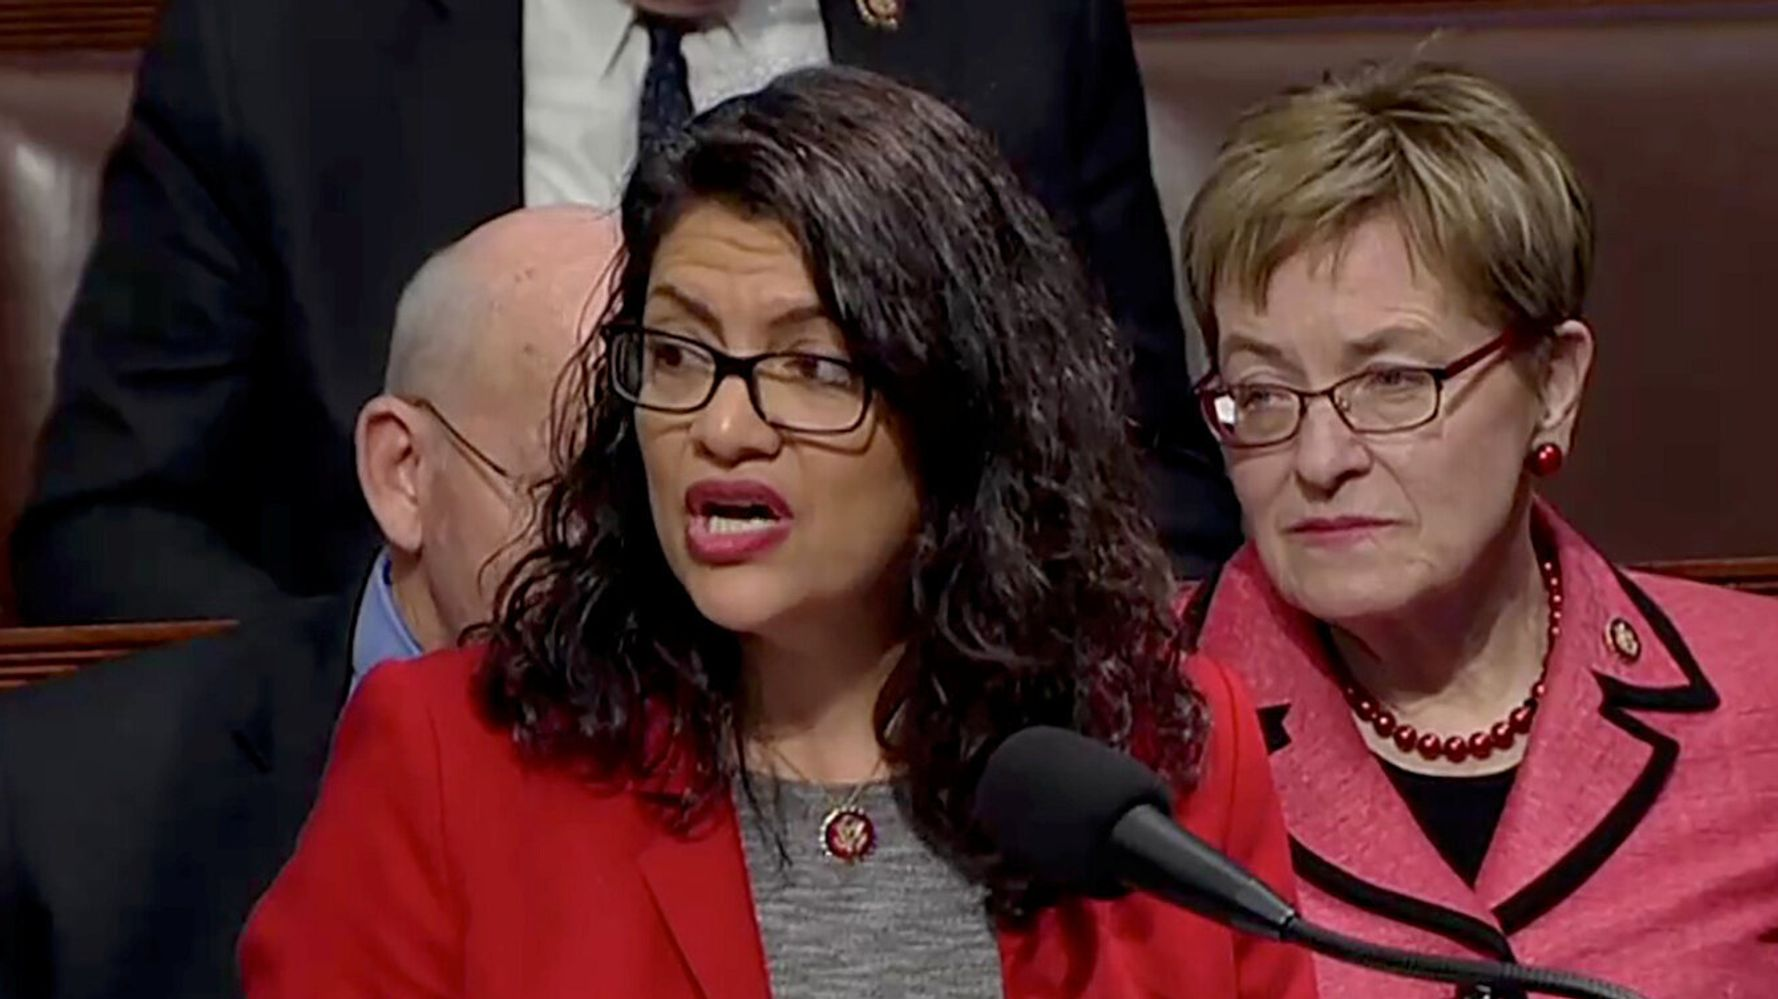 Progressive Rep. Rashida Tlaib Fires Back At Centrist Democrats: 'I Can't Be Silent'